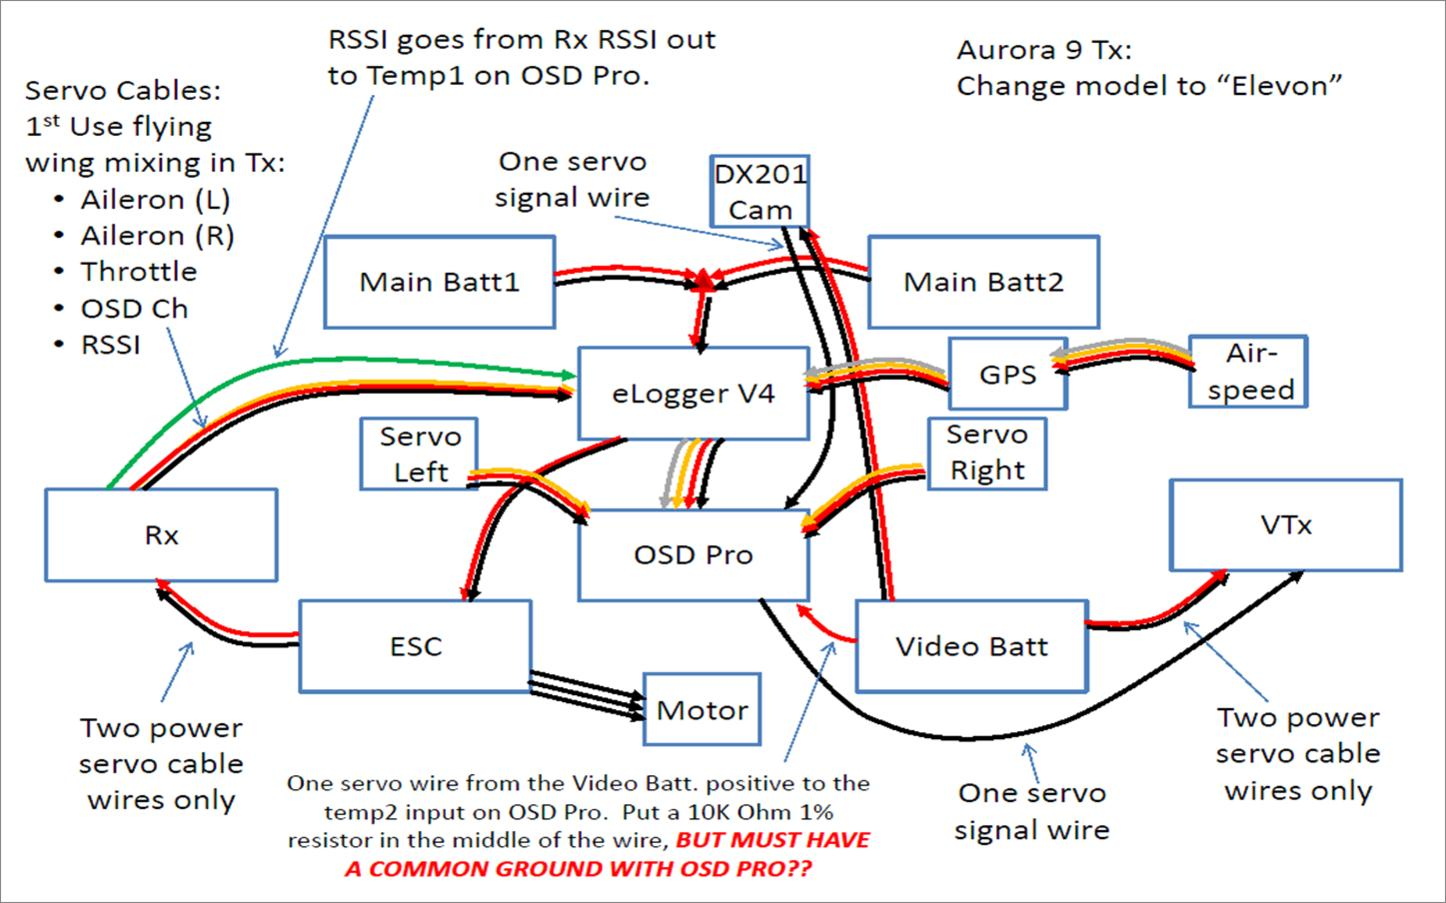 a3943686 53 OSD Pro Wiring Diagram In Progress?d=1302894340 attachment browser osd pro wiring diagram in progress jpg by eagle tree osd pro wiring diagram at fashall.co